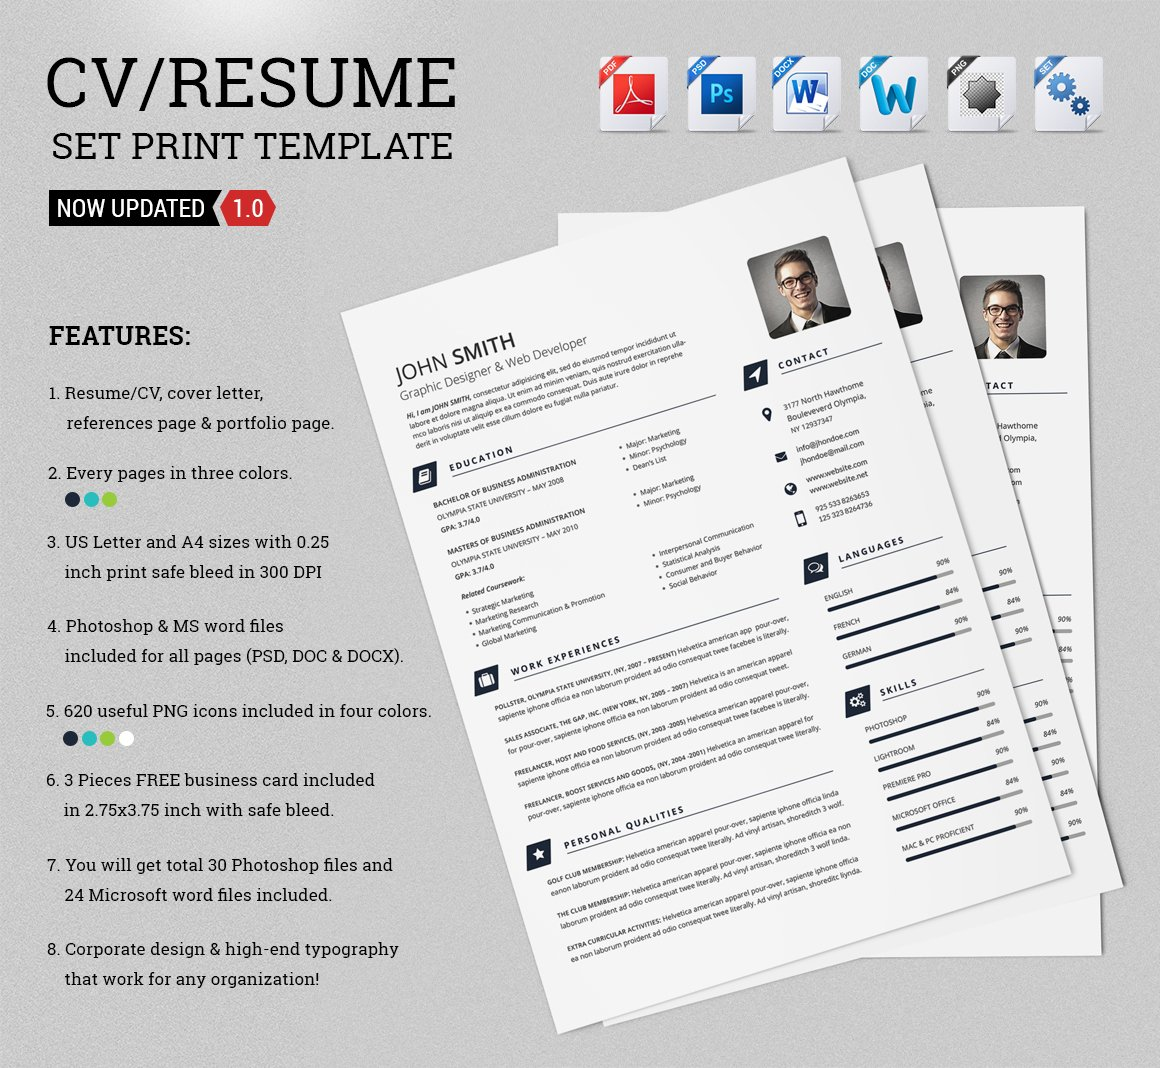 CV/Resume Set Print Template ~ Resume Templates ~ Creative Market